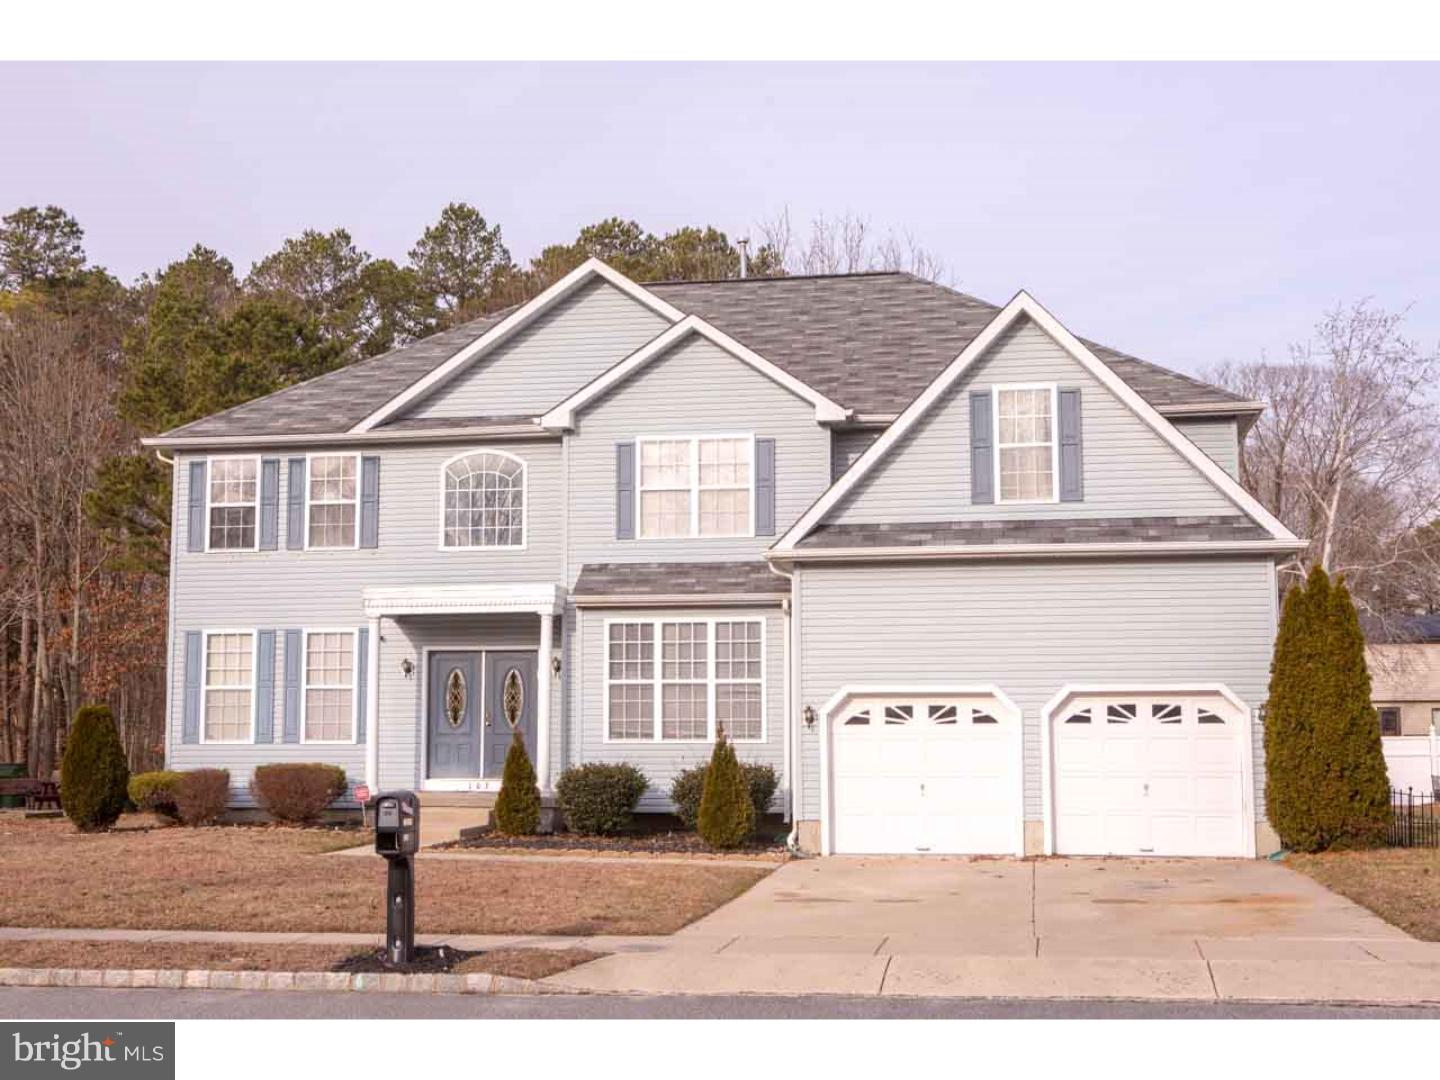 Single Family Home for Sale at 103 BRETTWOOD Drive Egg Harbor Township, New Jersey 08234 United States